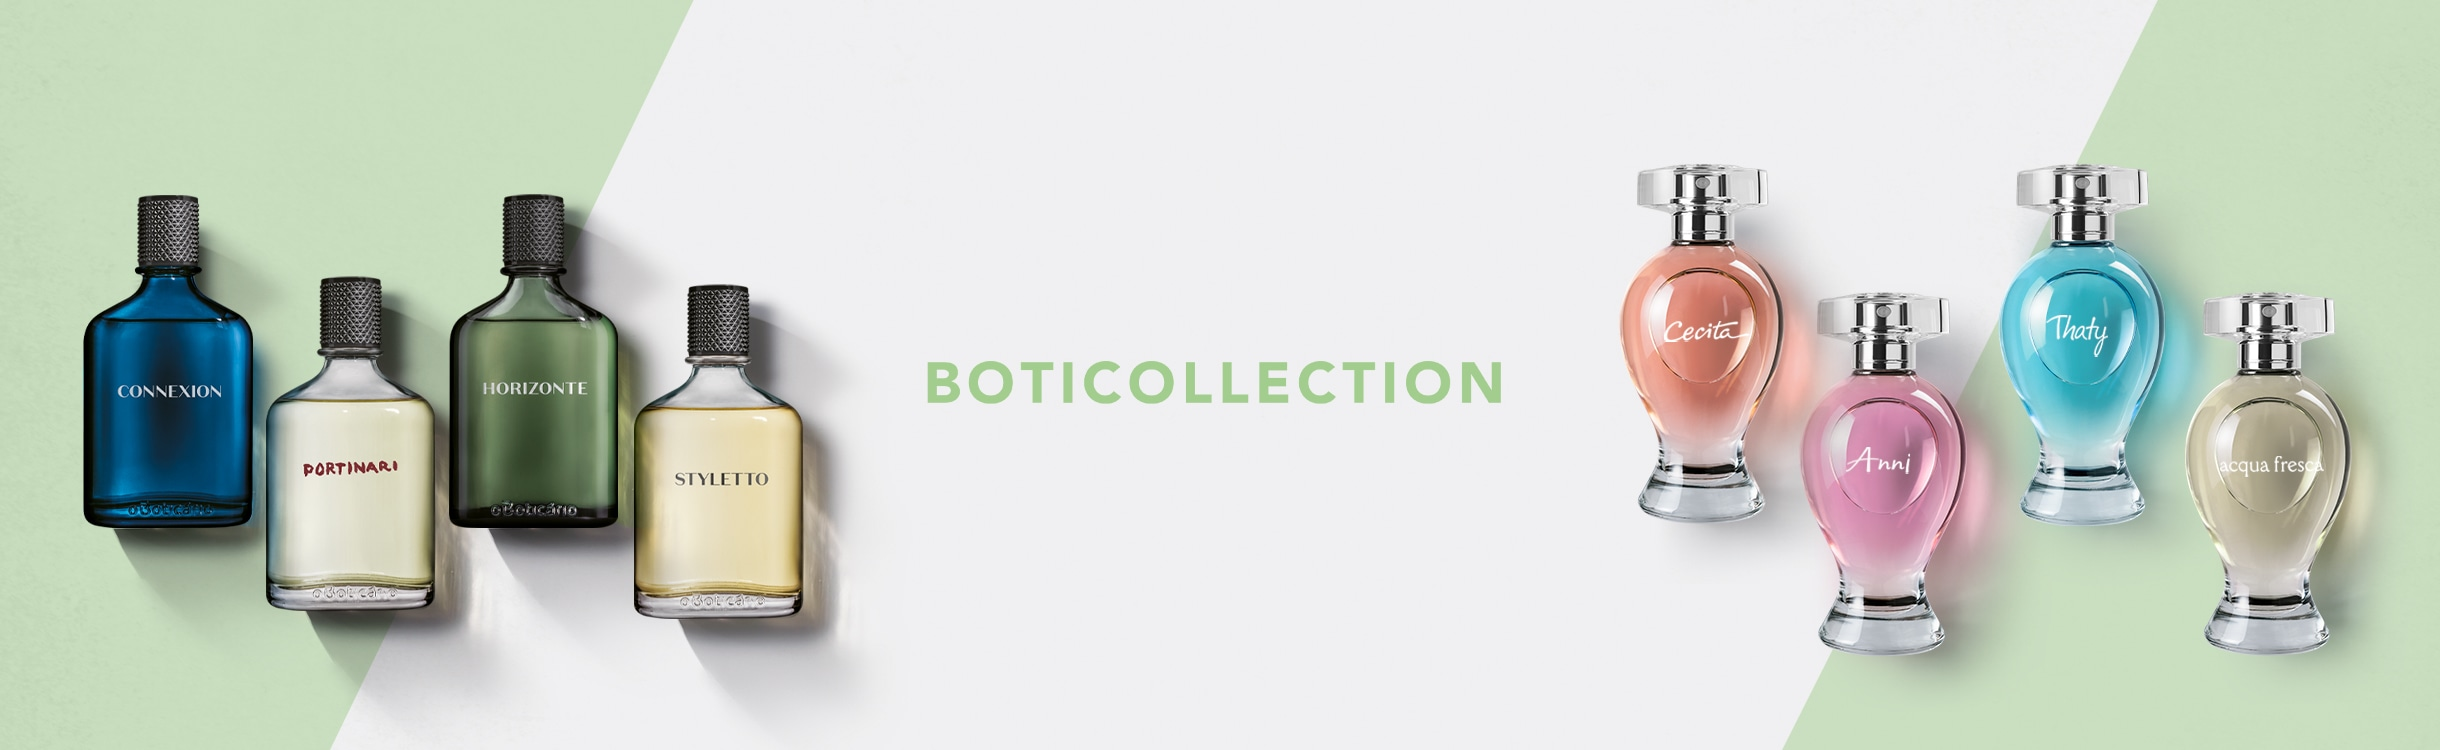 Horizonte: Boticollection